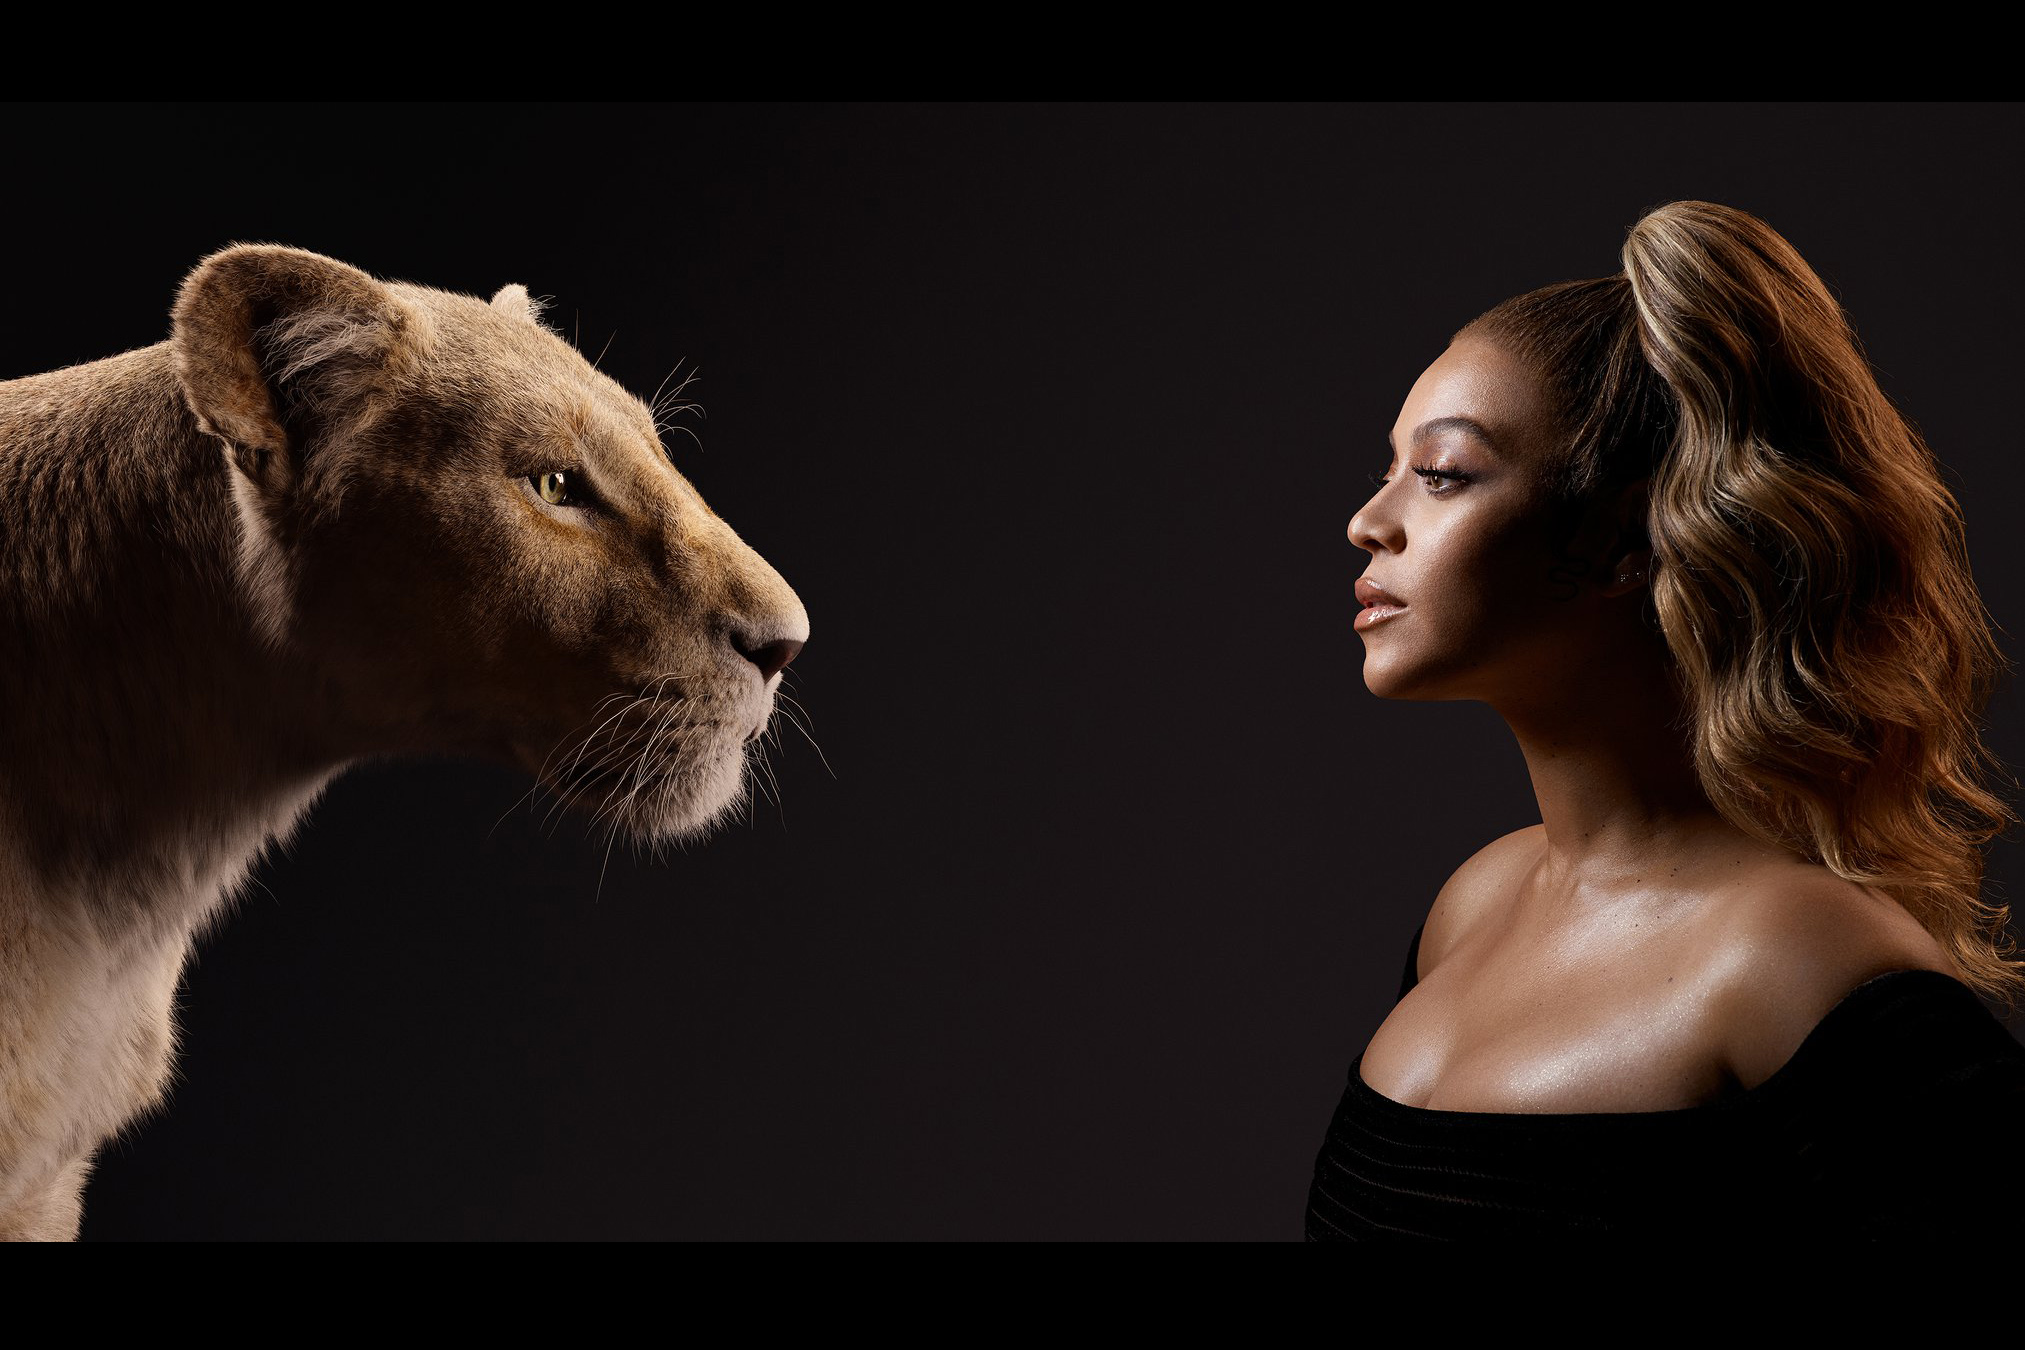 Beyonce The Lion Queen : A Lioness and  Human in 1